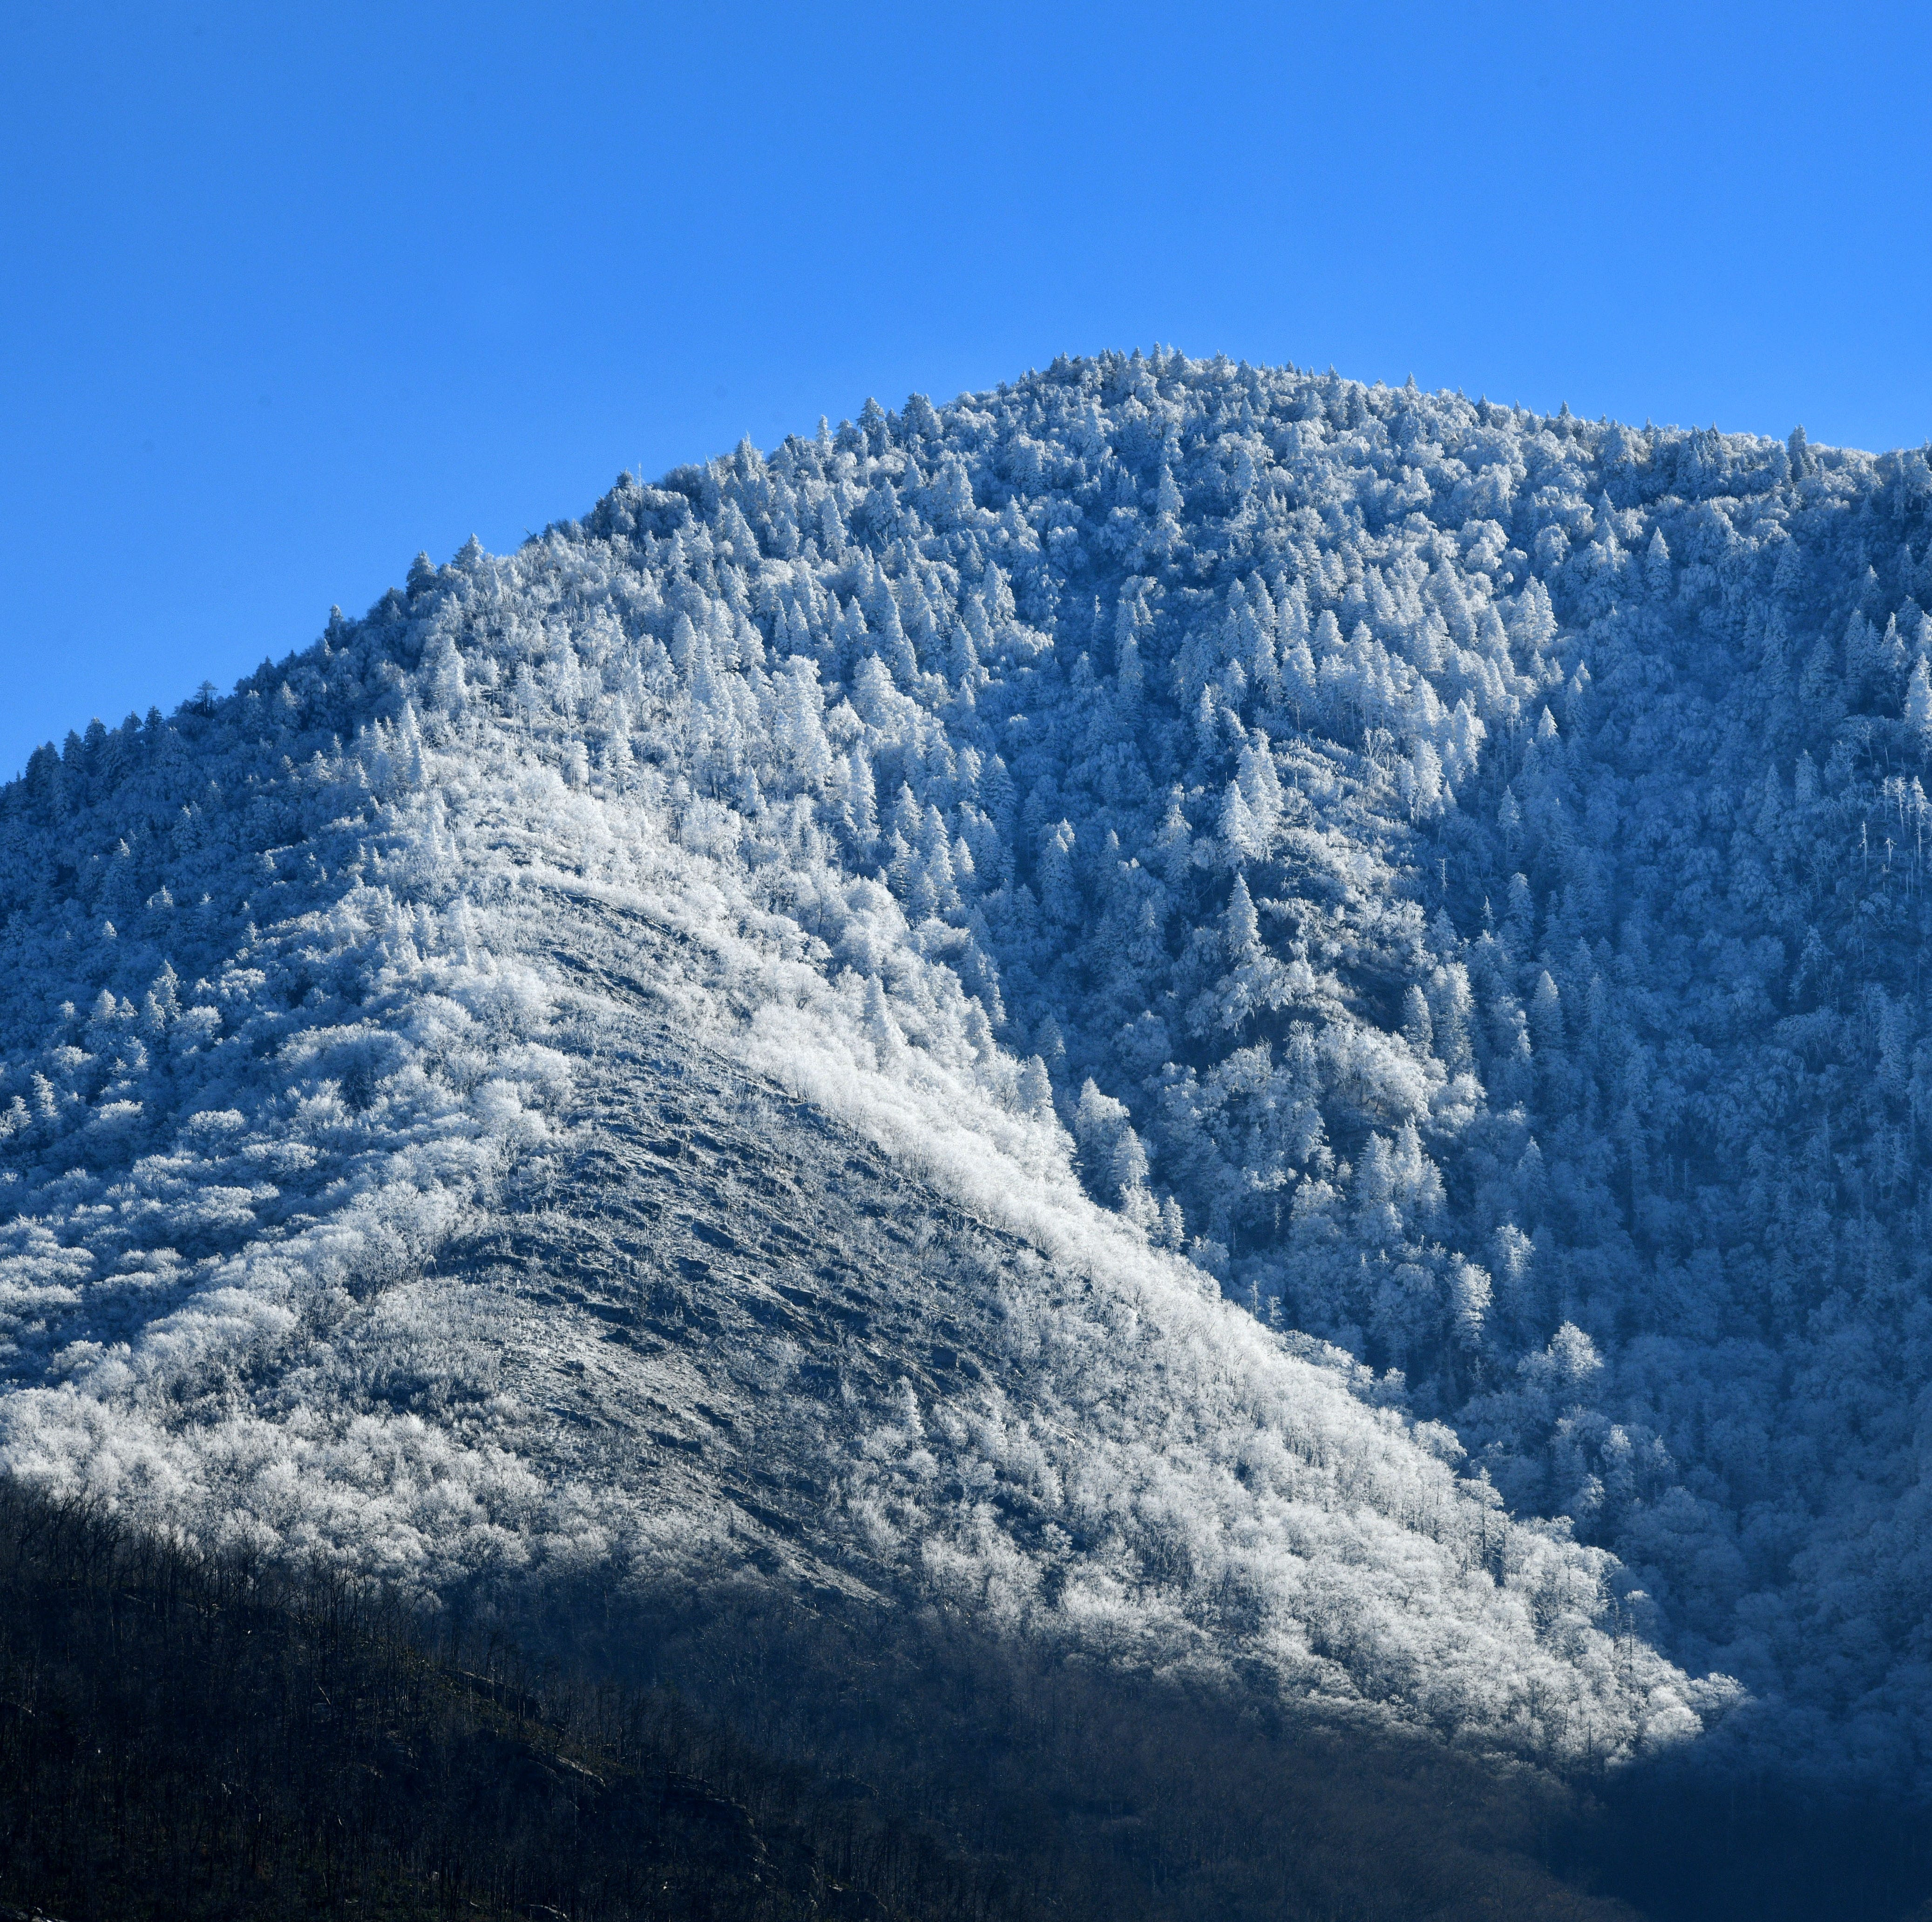 Snow flurries in forecast for East Tennessee; Morgan County Schools delayed